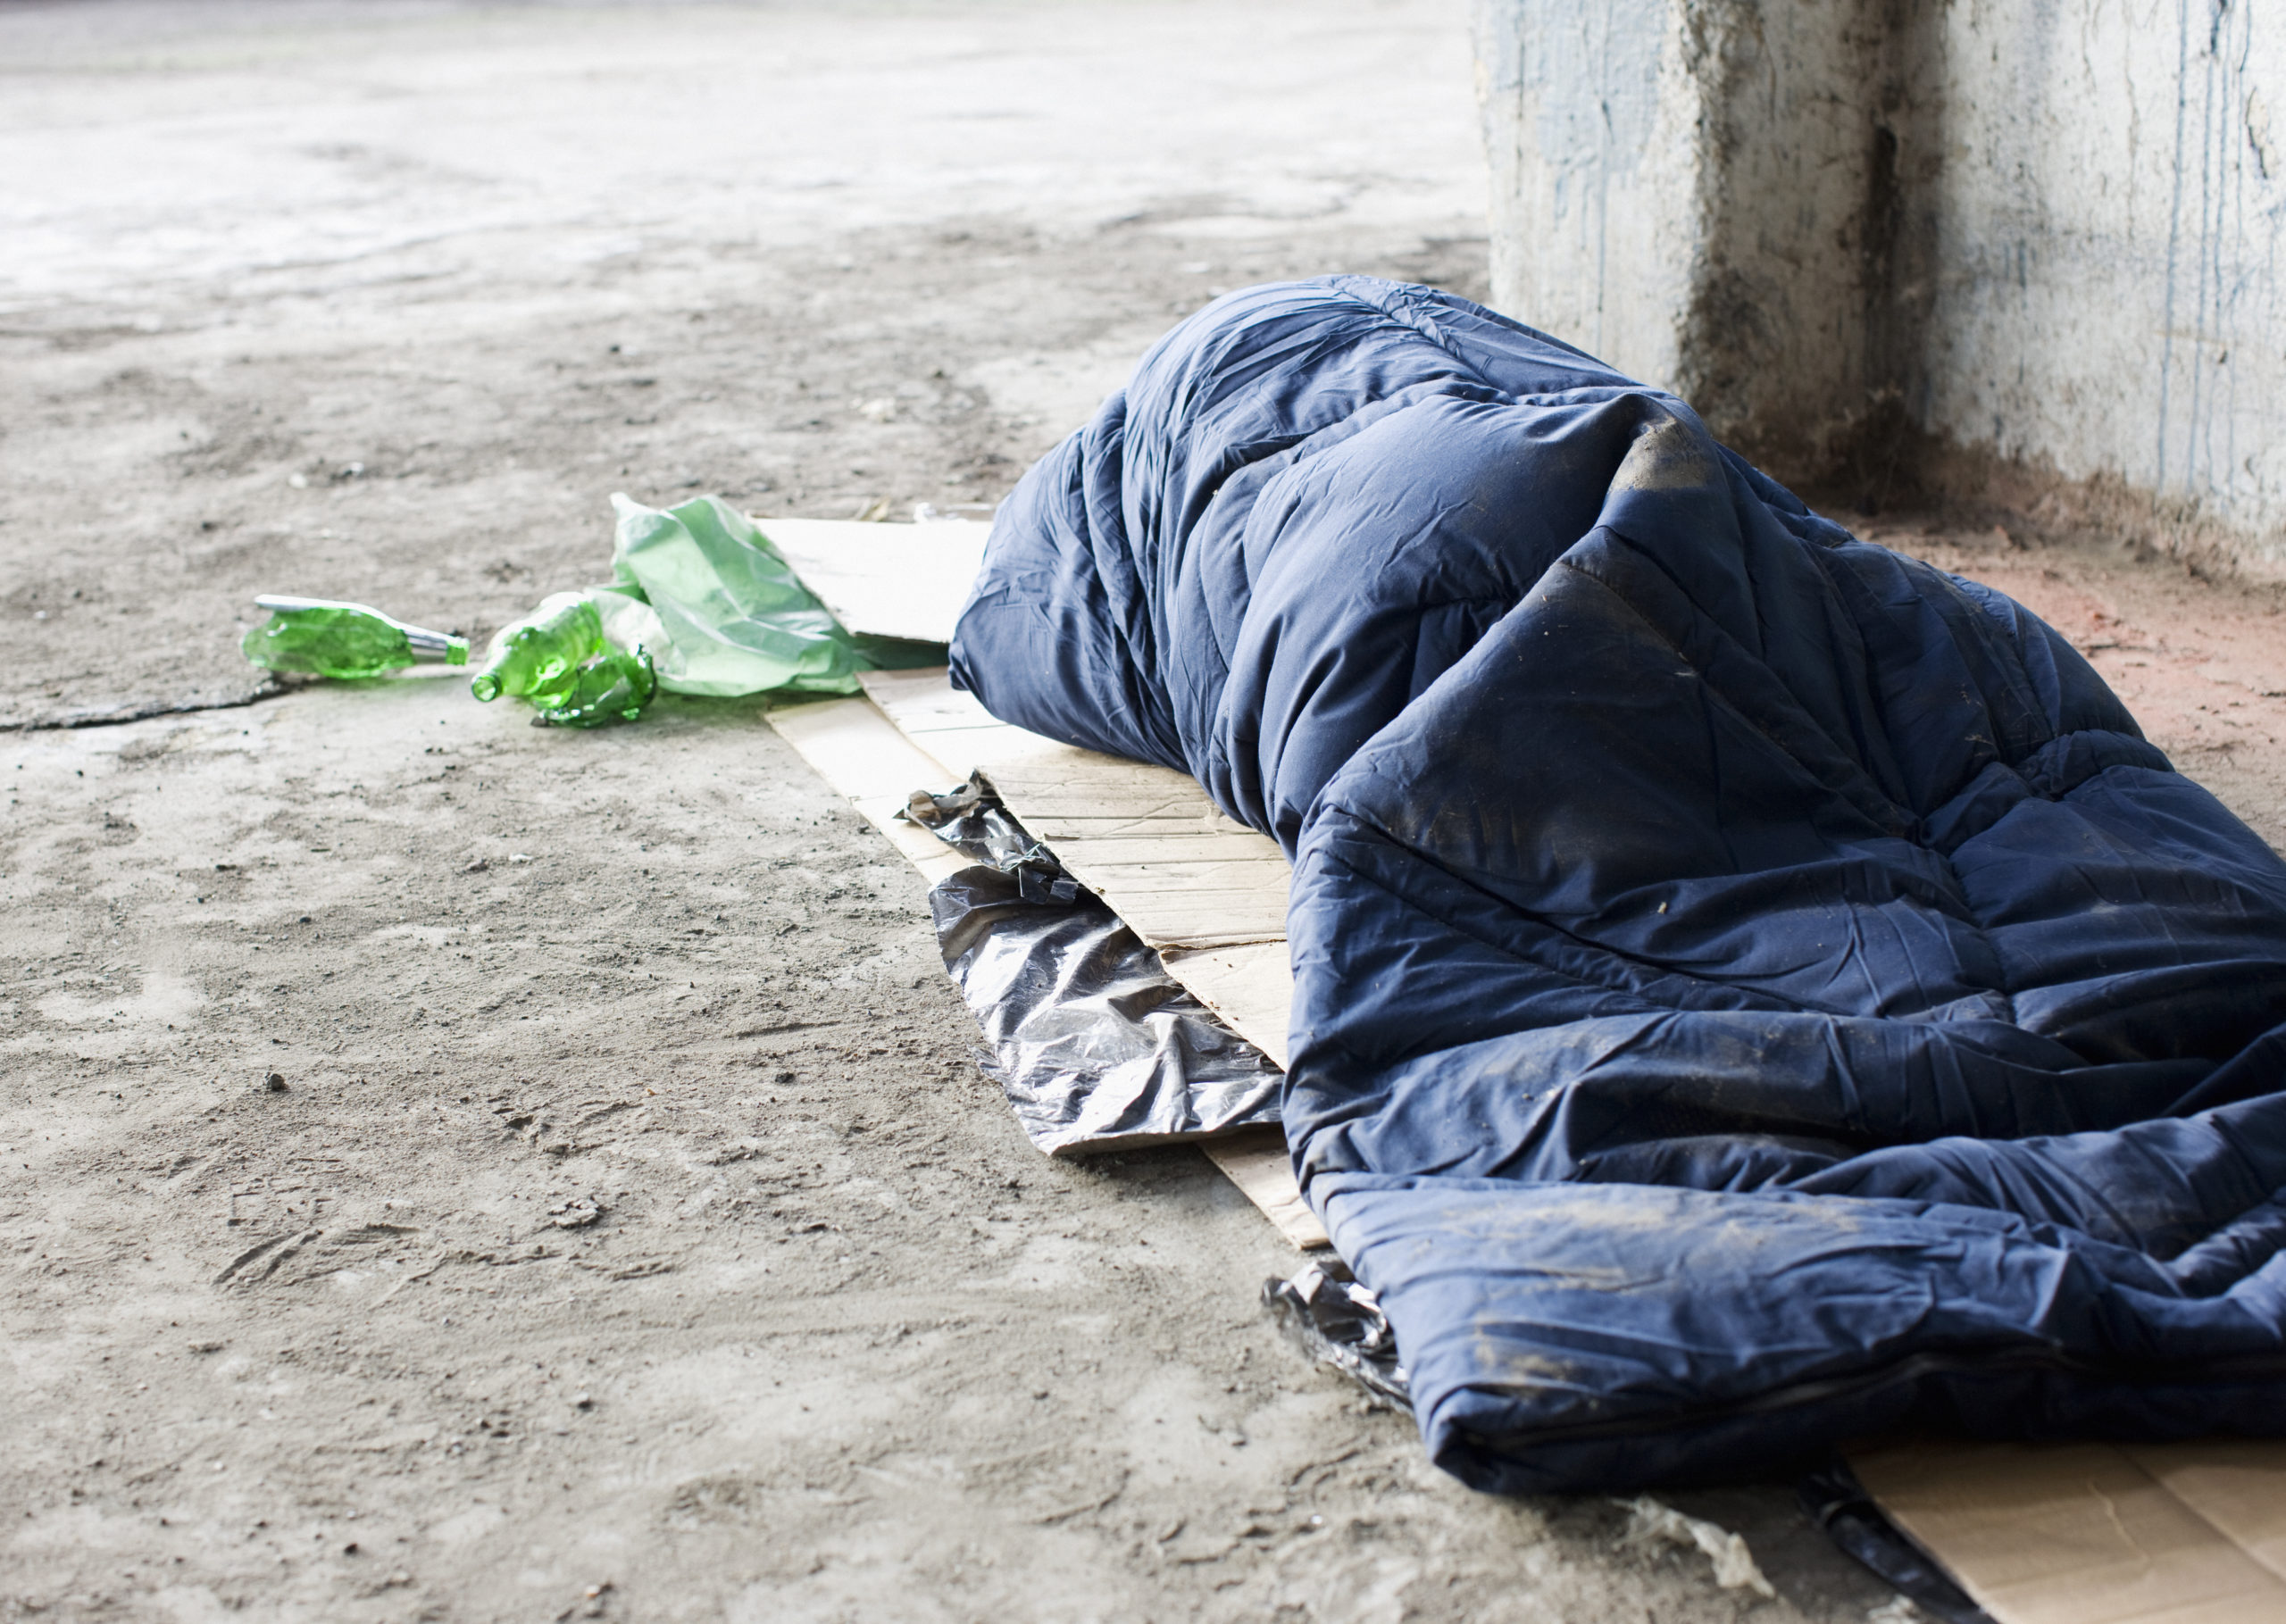 Big Society Capital invests £15m to house rough sleepers